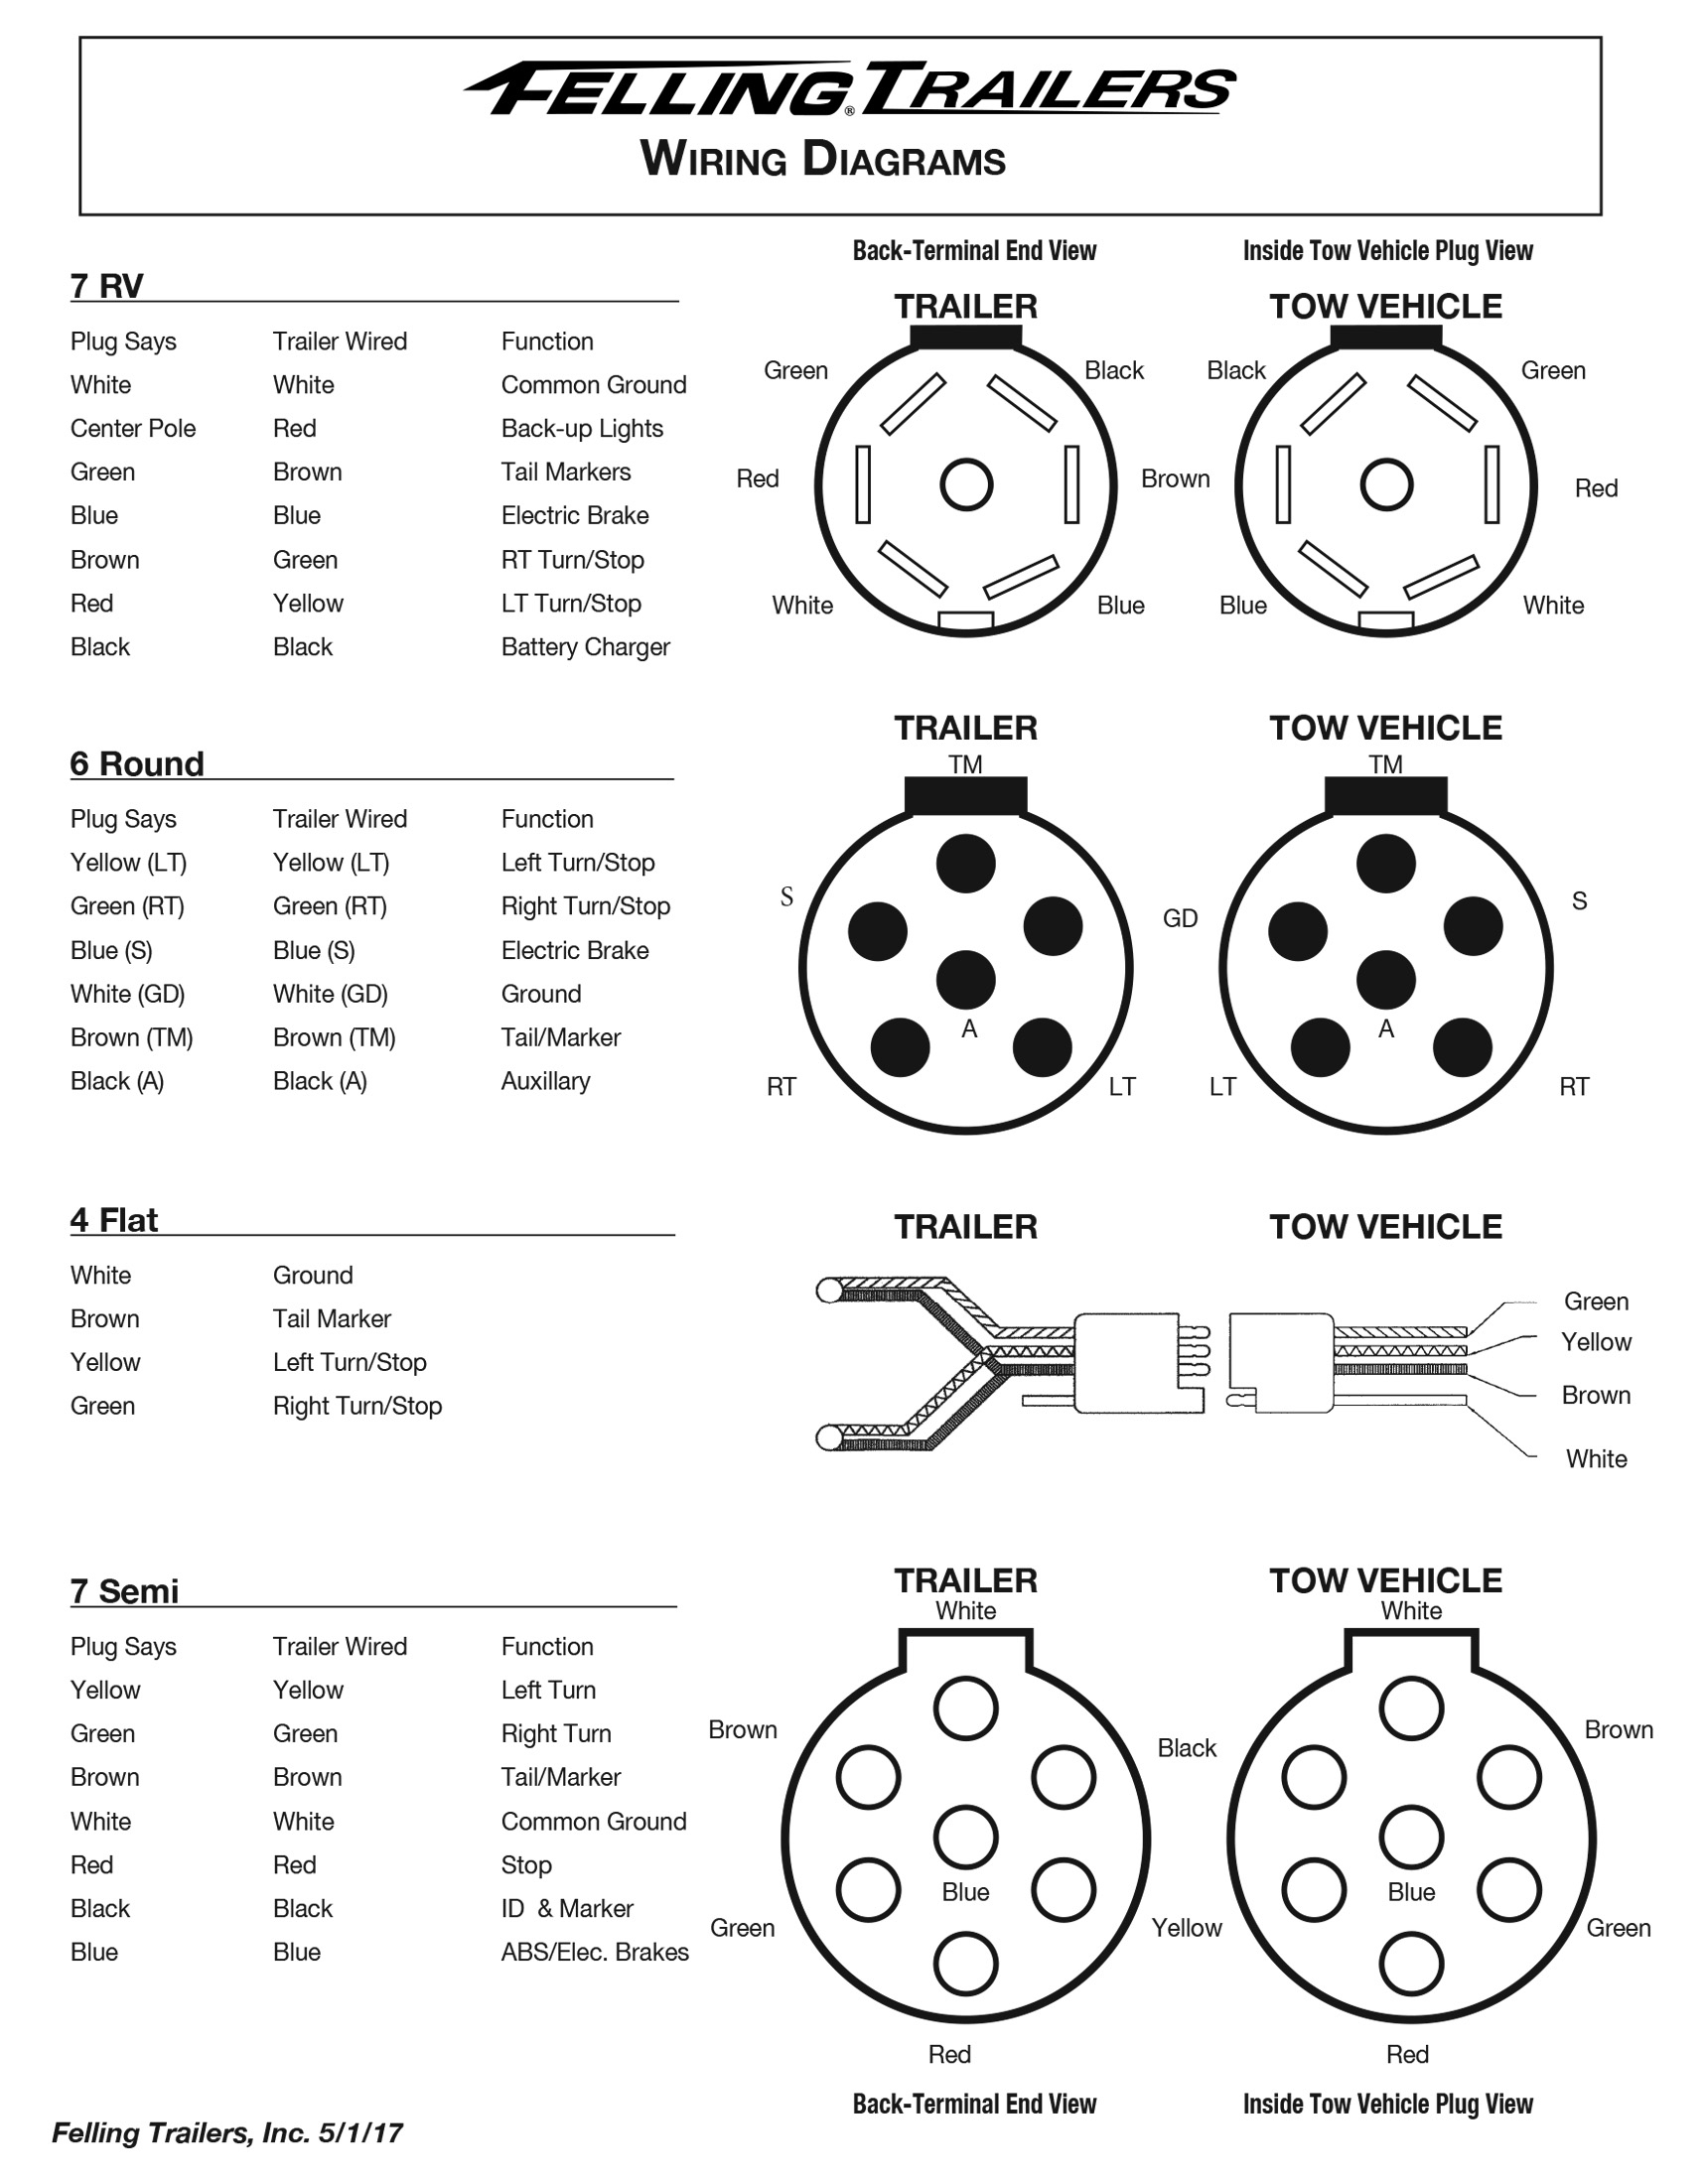 Service- Felling Trailers Wiring Diagrams, Wheel Toque - Trailer Wiring Diagram With Electric Brakes